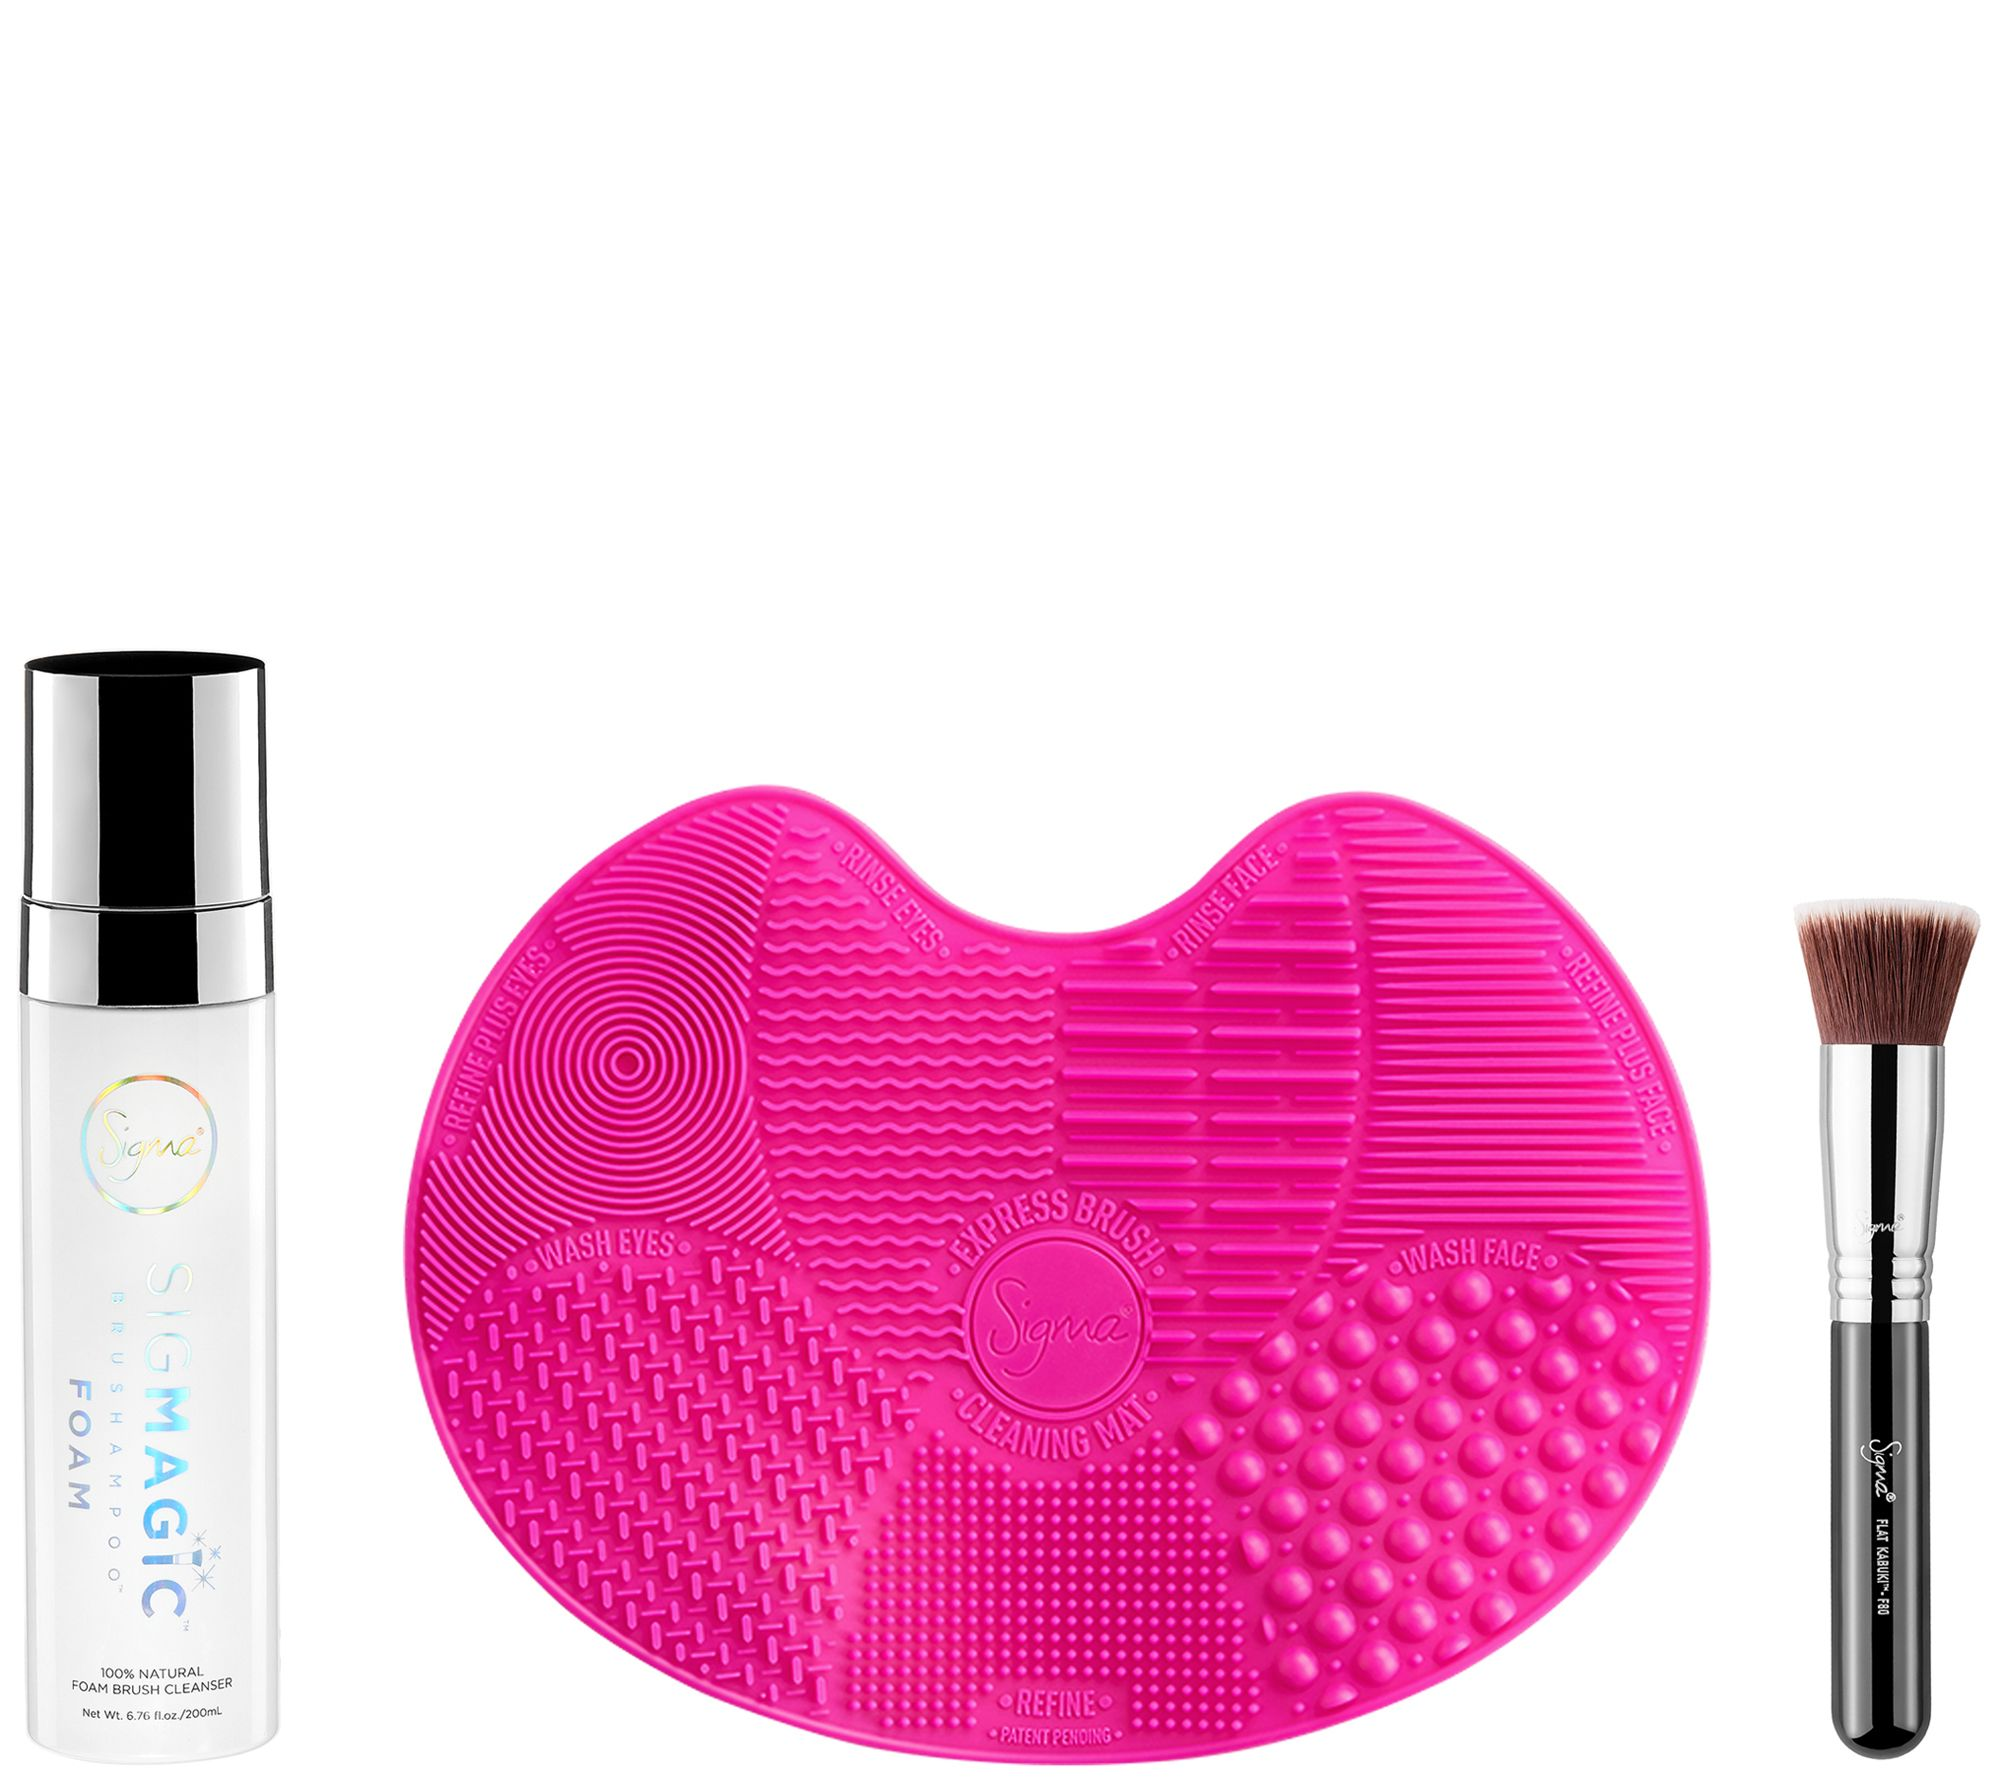 Sigma Beauty favorites set